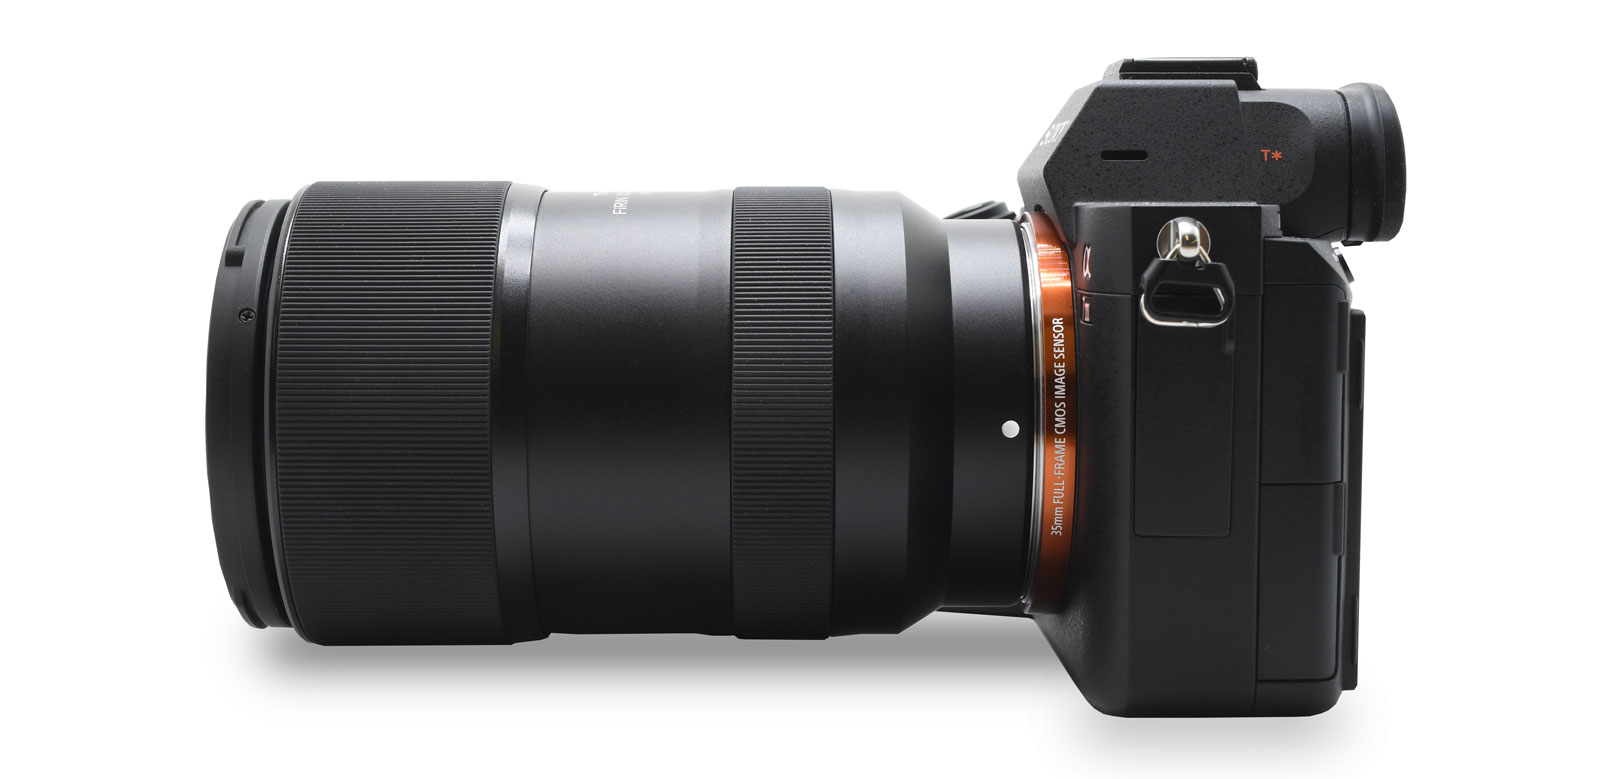 Tokina Firin 100mm F2.8 FE Macro Lens Attached to Sony Mirrorless Camera.jpg